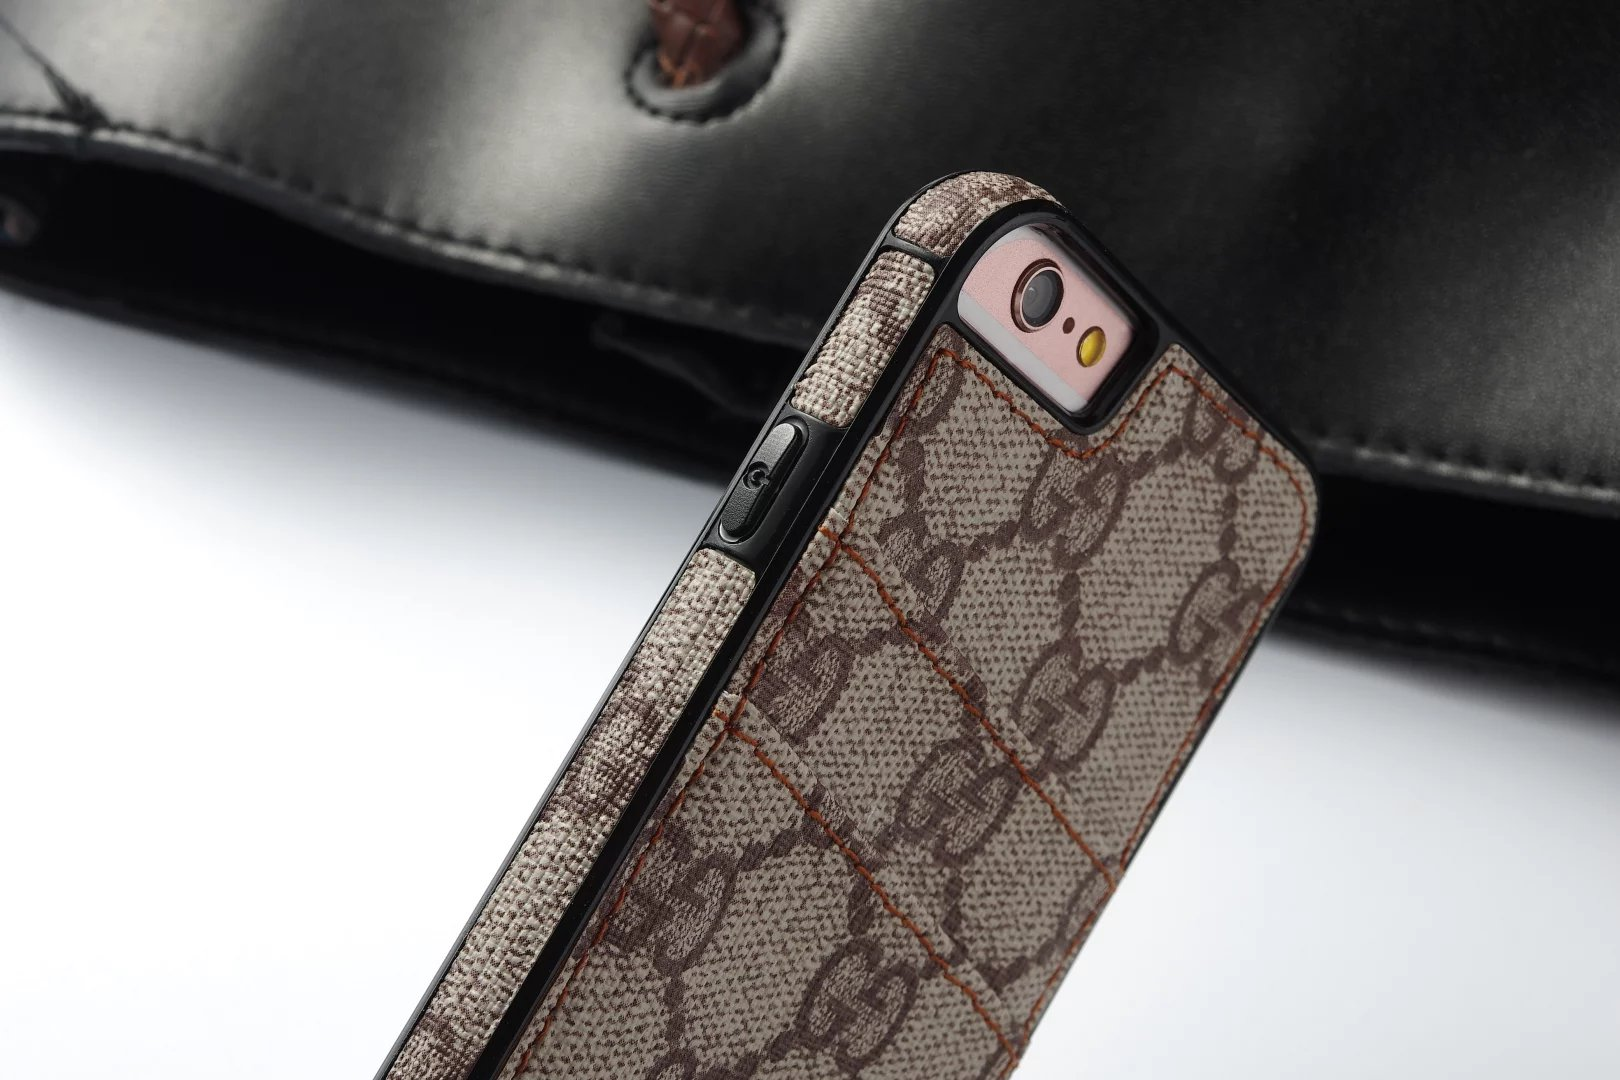 foto iphone hülle handyhülle foto iphone Burberry iphone7 Plus hülle iphone 7 Plus leder hülle schutzhülle 7lbst designen iphone 7 Plus gehäu7 iphone schale alu hülle iphone 7 Plus neues apple iphone